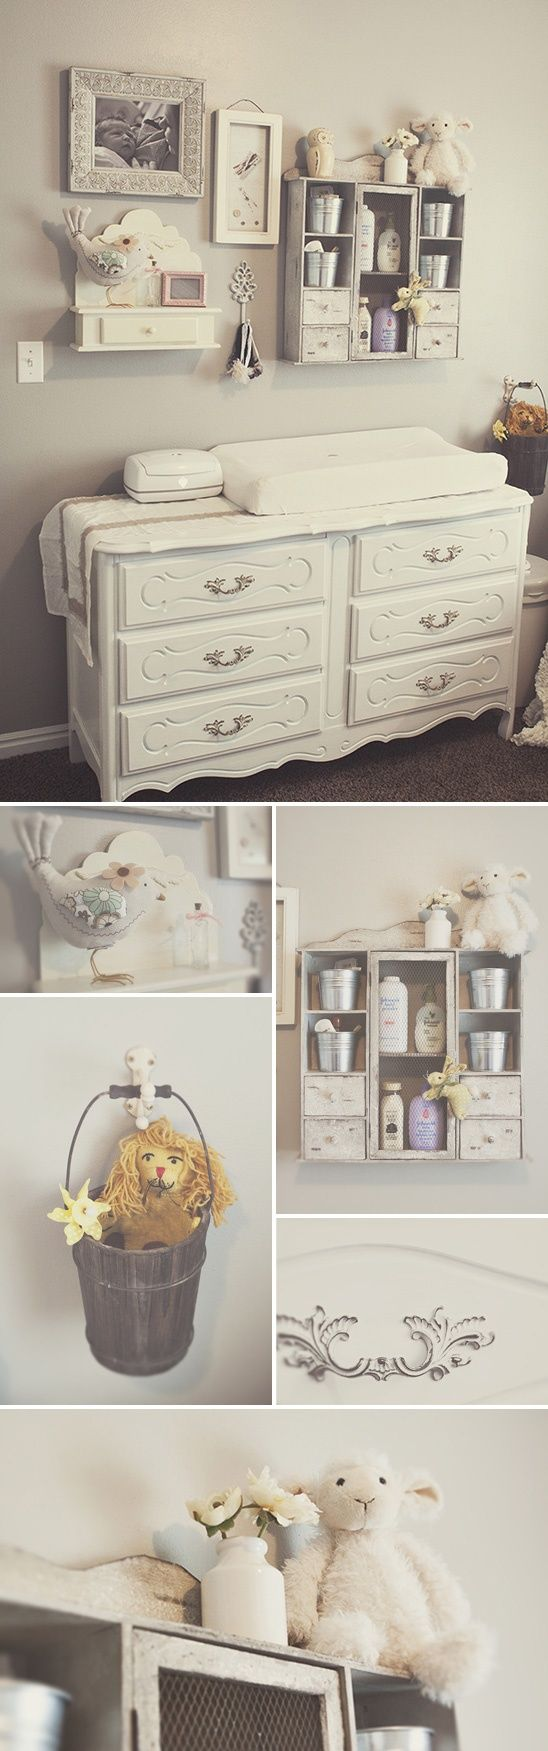 Shabby Chic Wall Decor Best 10 Shabby Chic Shelves Ideas On Pinterest Rustic Shabby